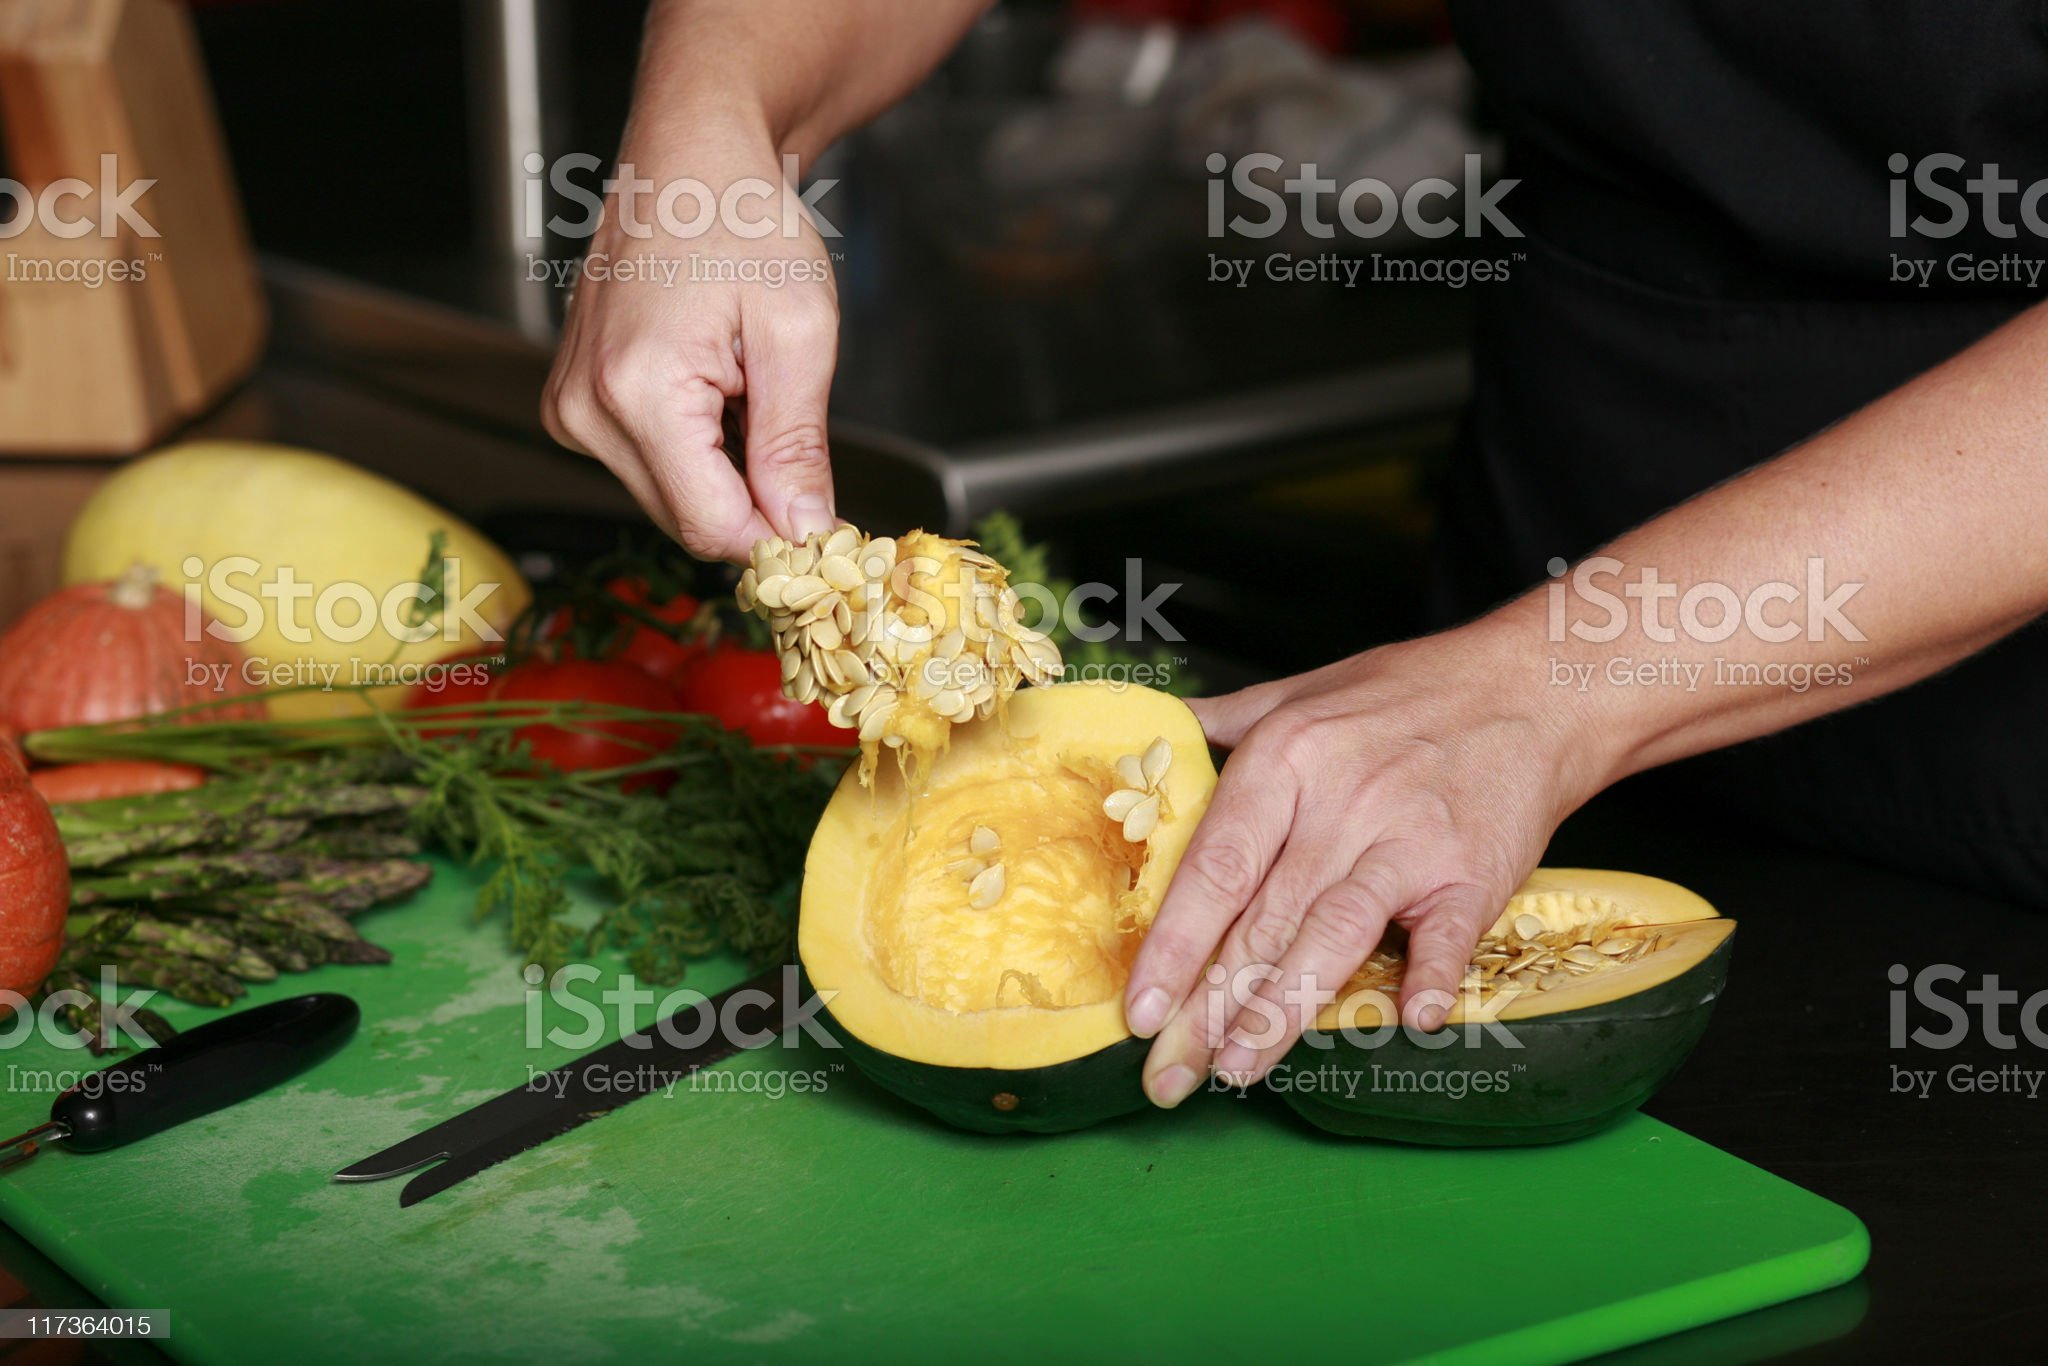 Fresh Veggie Series royalty-free stock photo